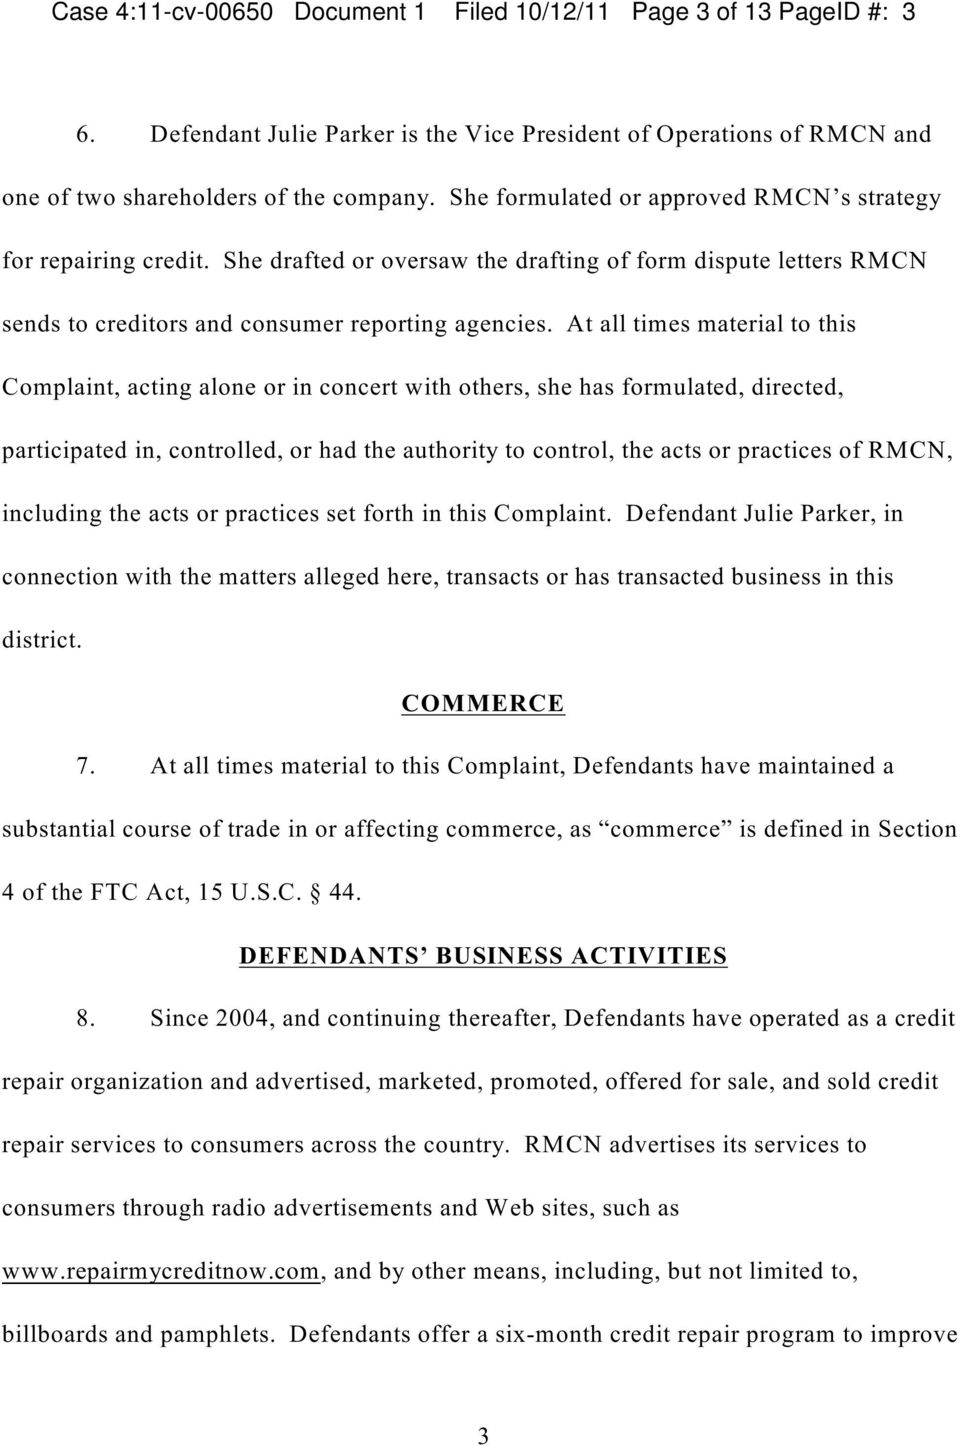 At all times material to this Complaint, acting alone or in concert with others, she has formulated, directed, participated in, controlled, or had the authority to control, the acts or practices of